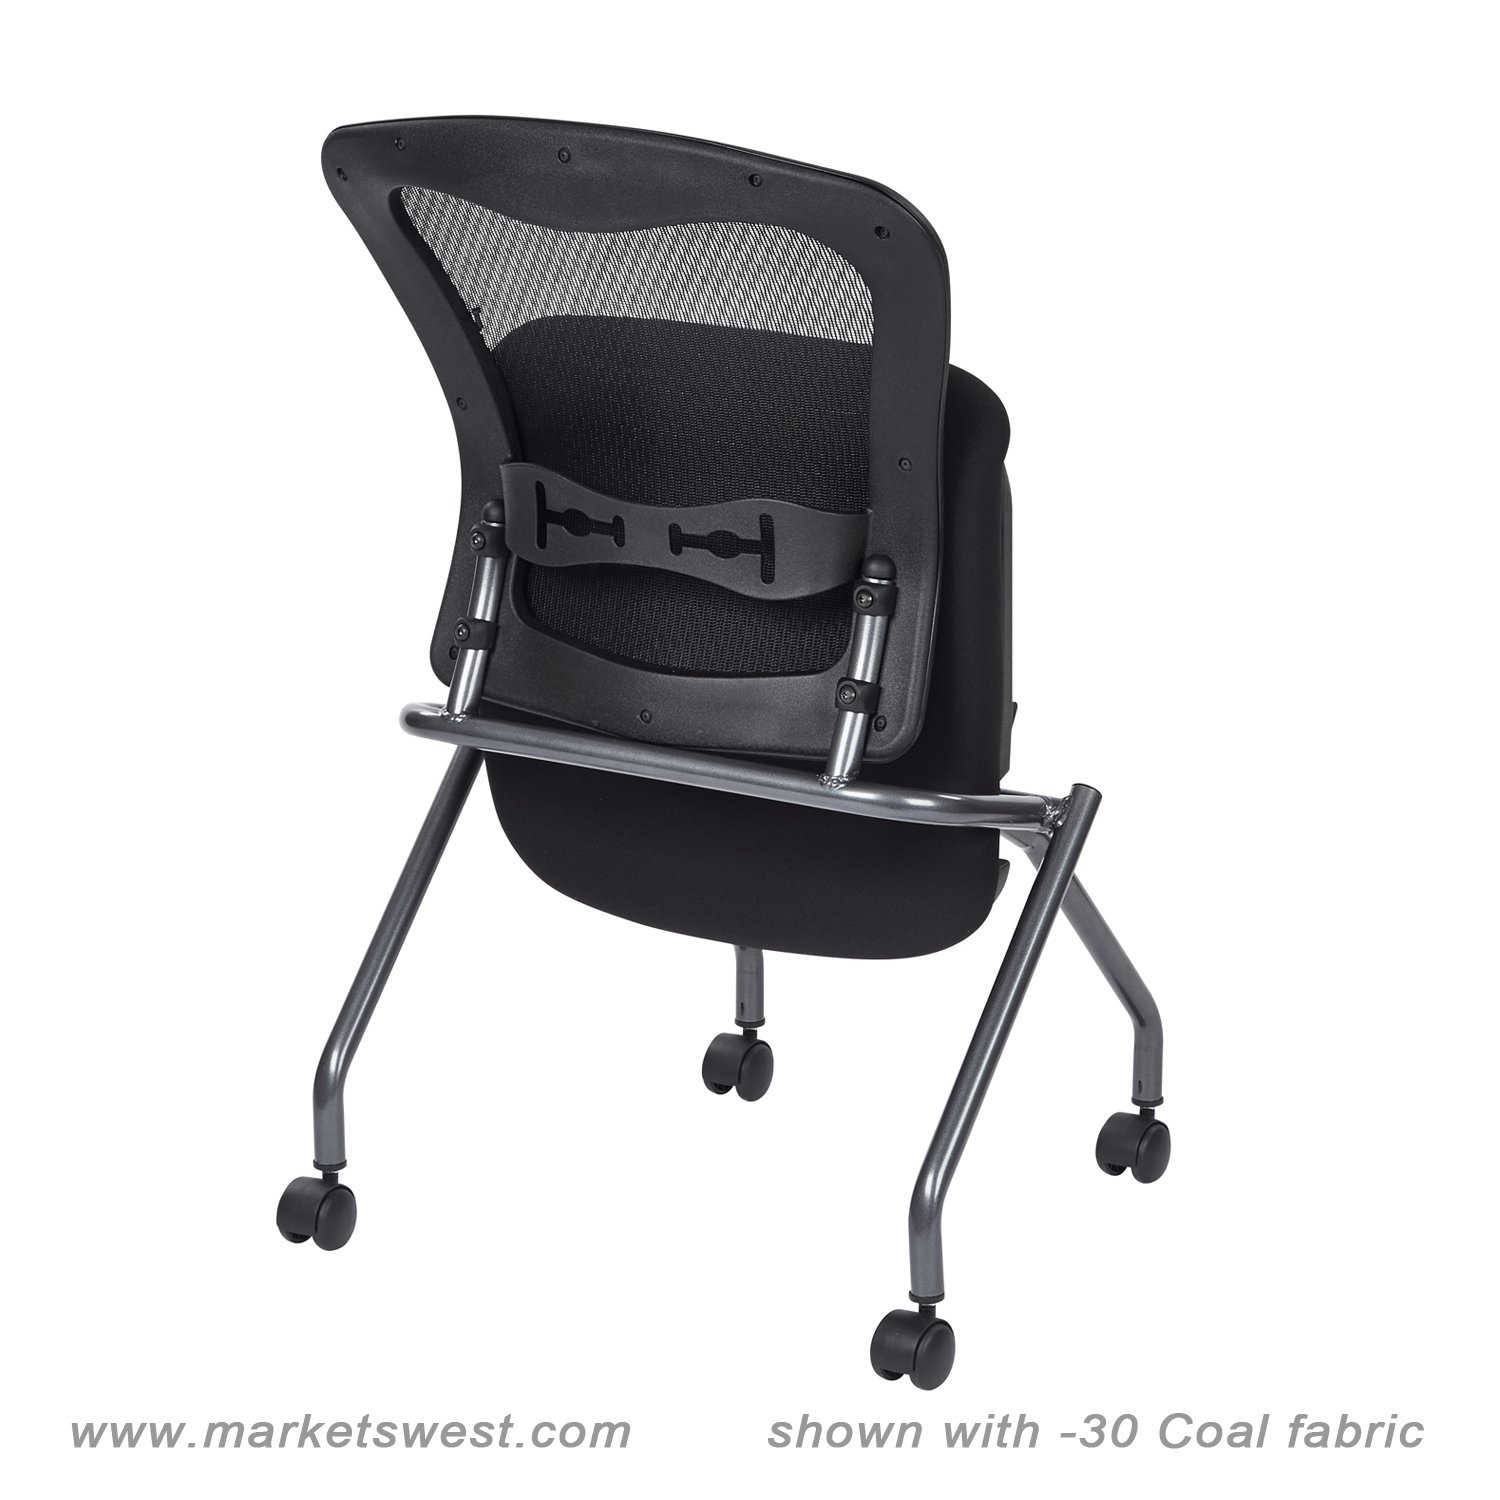 deluxe folding chair with progrid back-no arms